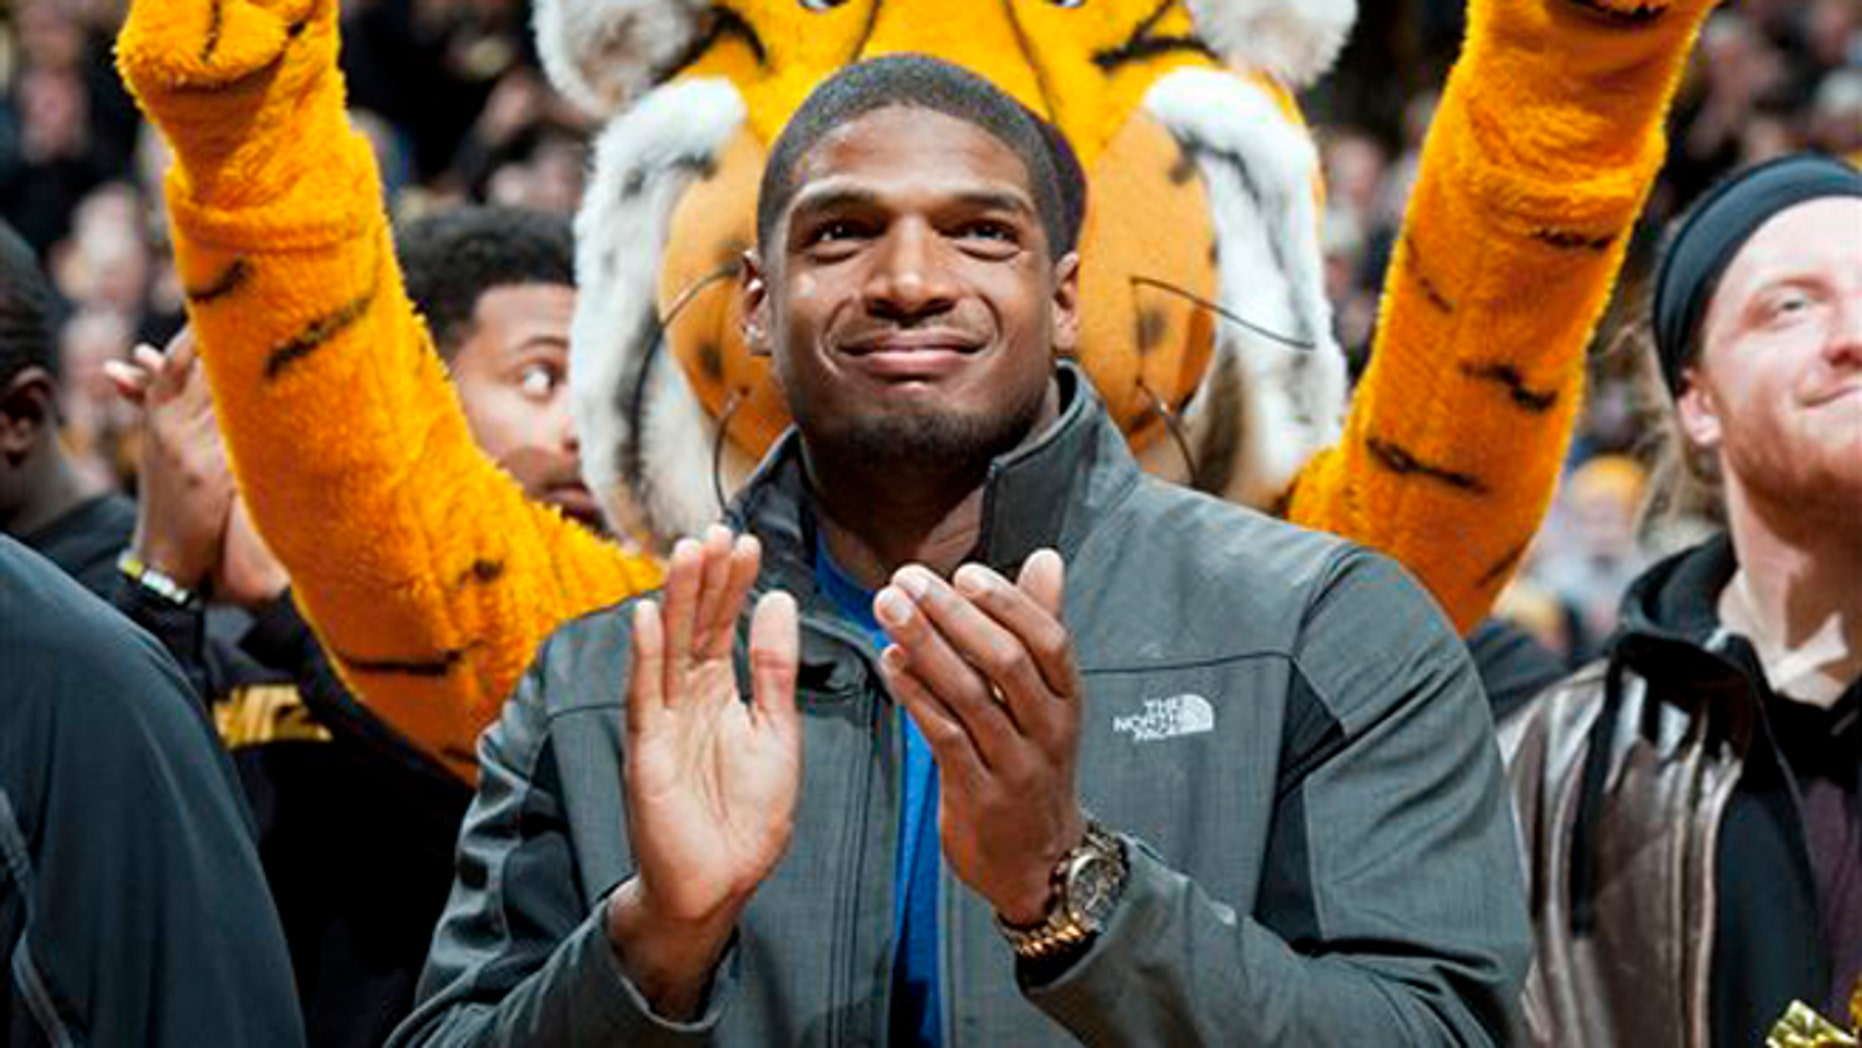 Michael Sam at halftime of an NCAA college basketball game on Feb. 15, 2014.